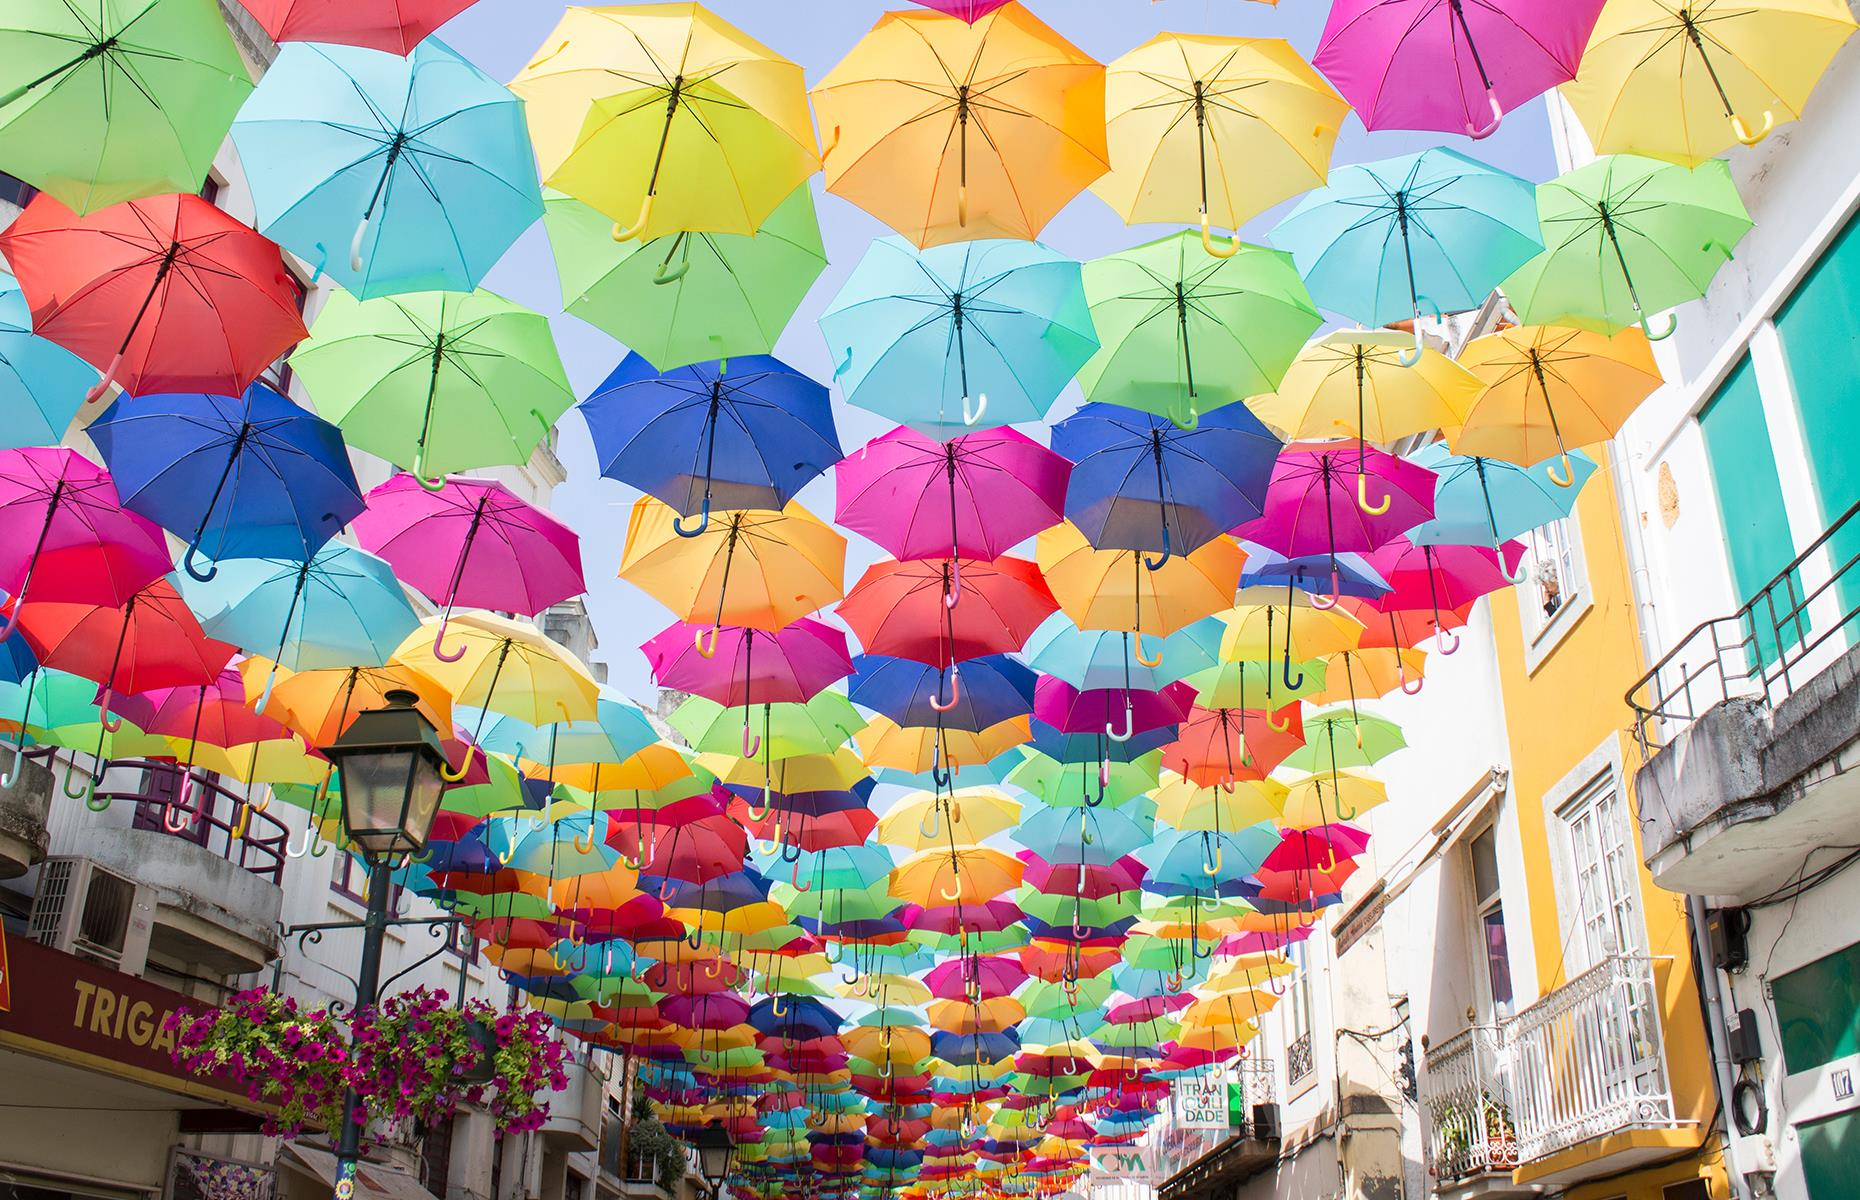 Slide 26 of 31: What began in 2011 as an art installation for Águeda's annual art festival has turned into the city's most famous attraction. Today, four of Águeda's streets are turned into a colorful spectacle with the help of more than 3,000 umbrellas, usually attracting thousands of tourists.